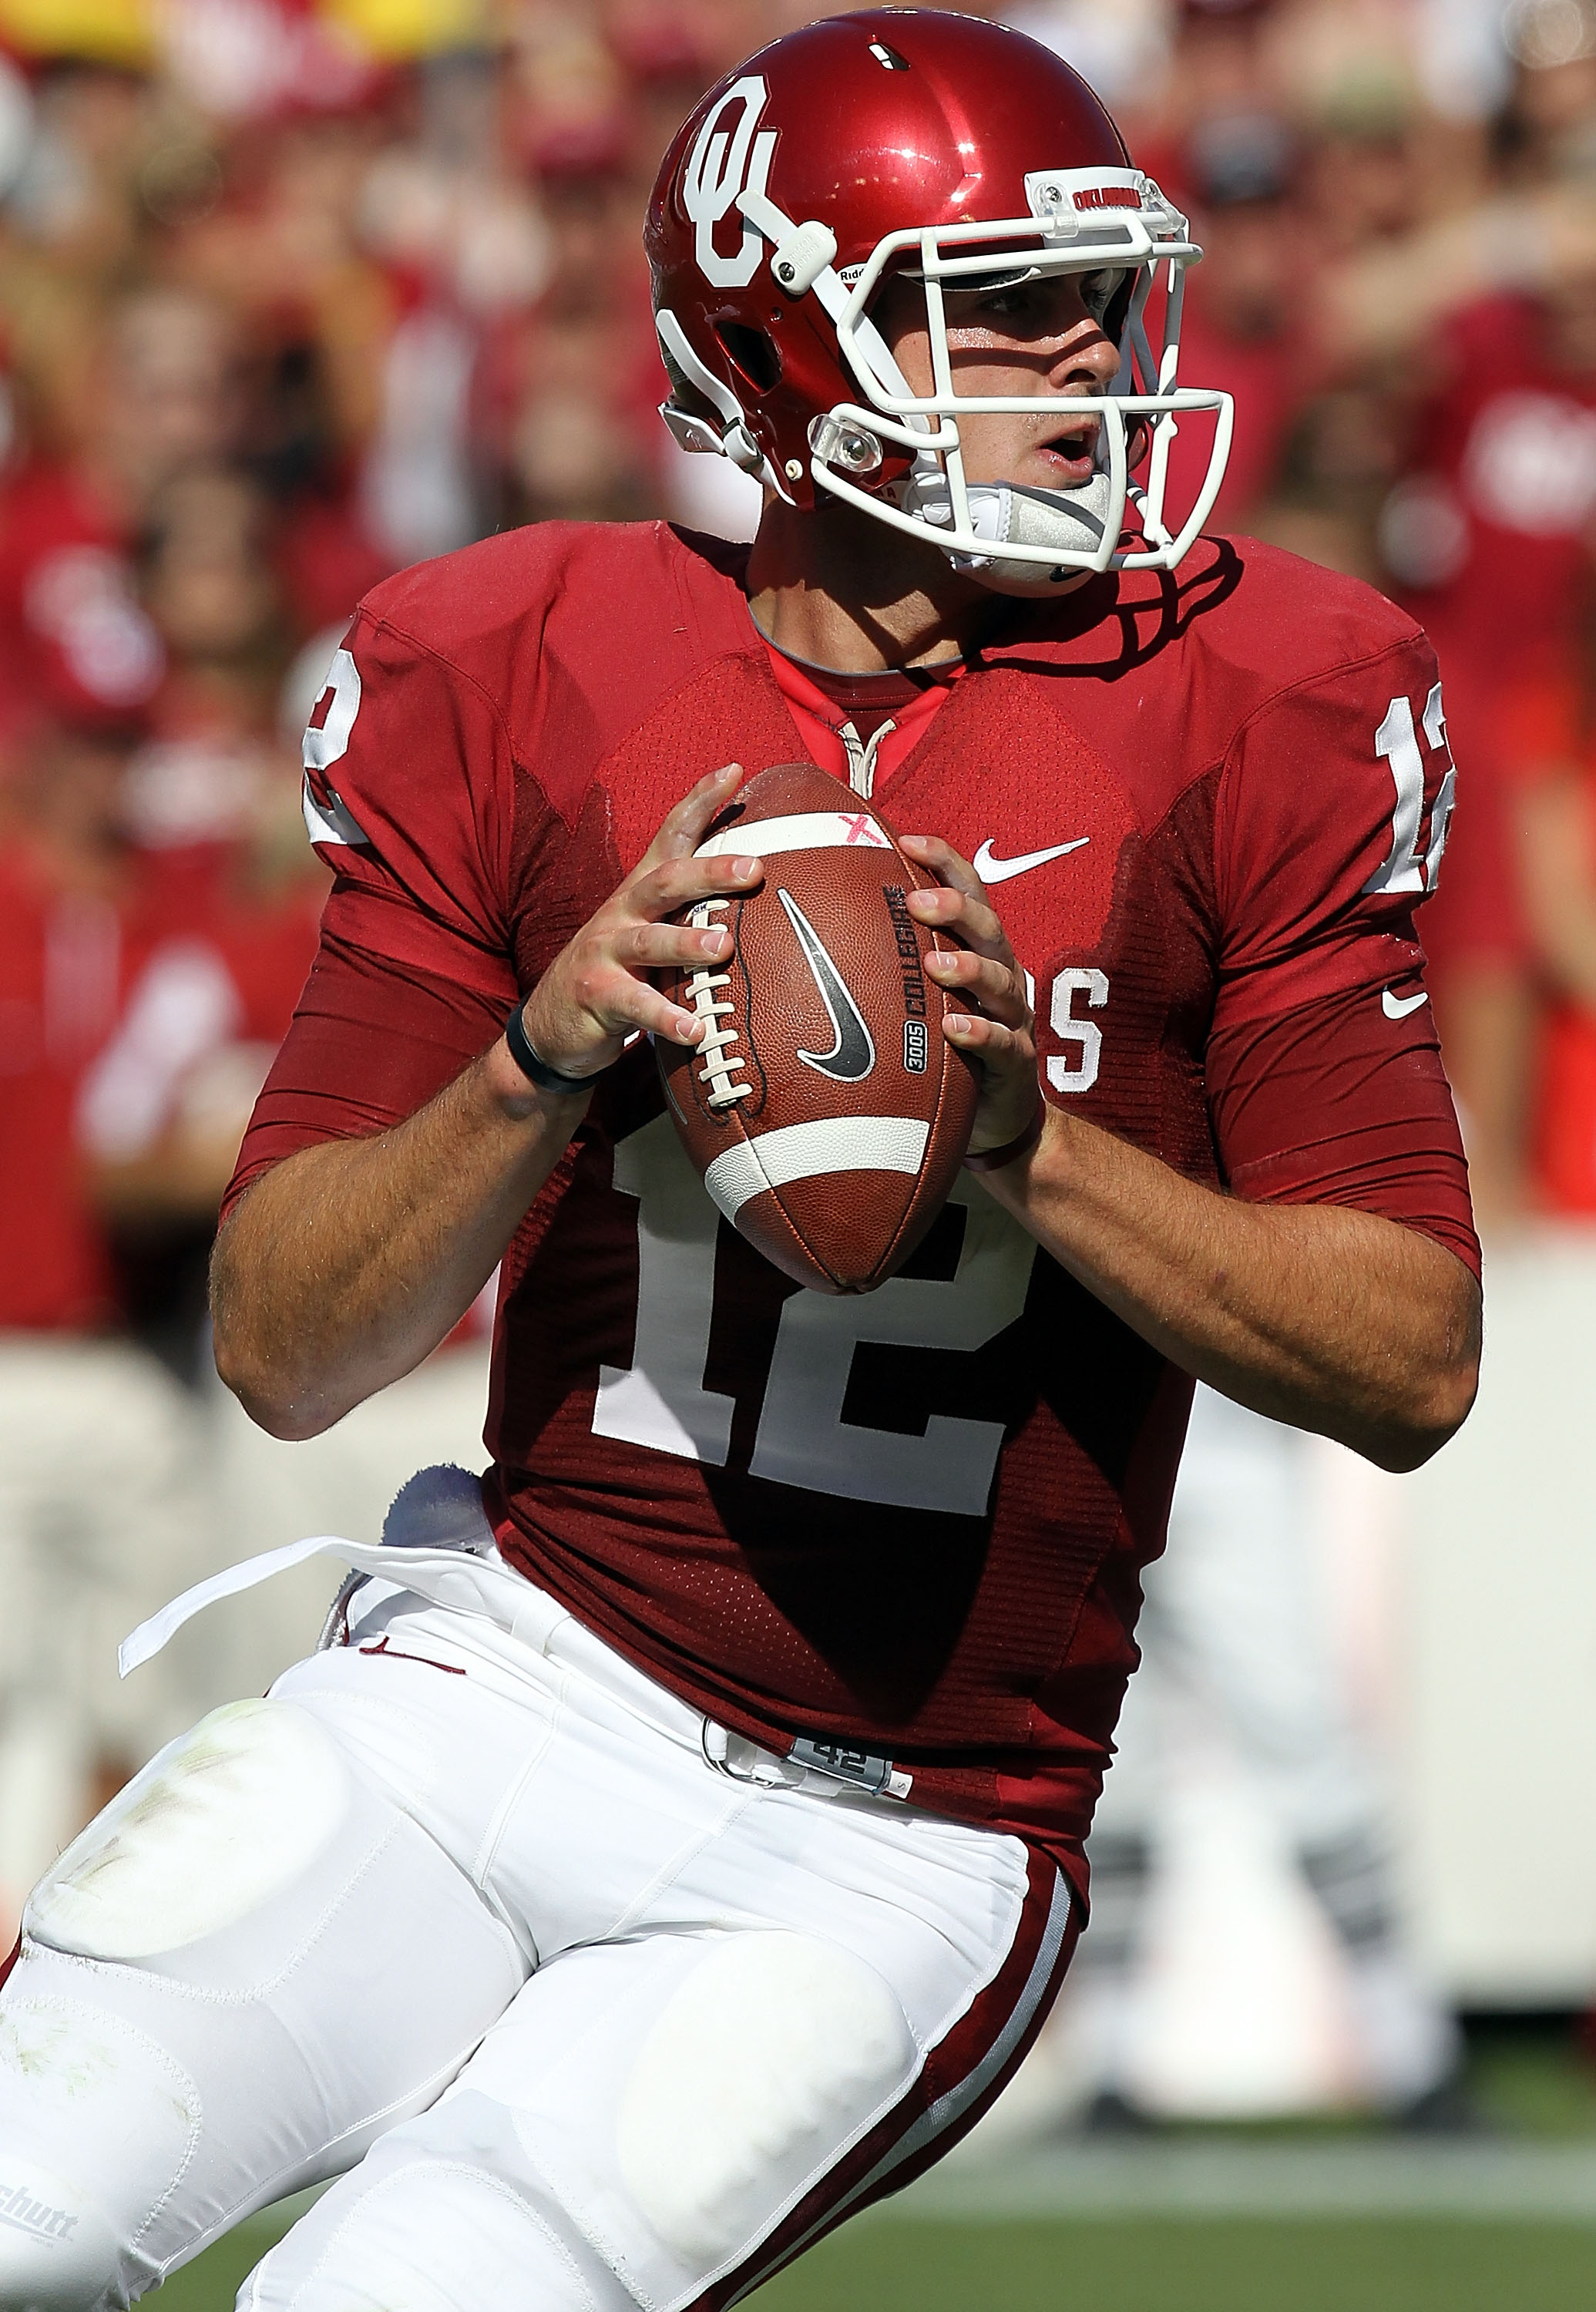 DALLAS - OCTOBER 02:  Quarterback Landry Jones #12 of the Oklahoma Sooners drops back to pass against the Texas Longhorns in the second quarter at the Cotton Bowl on October 2, 2010 in Dallas, Texas.  (Photo by Ronald Martinez/Getty Images)